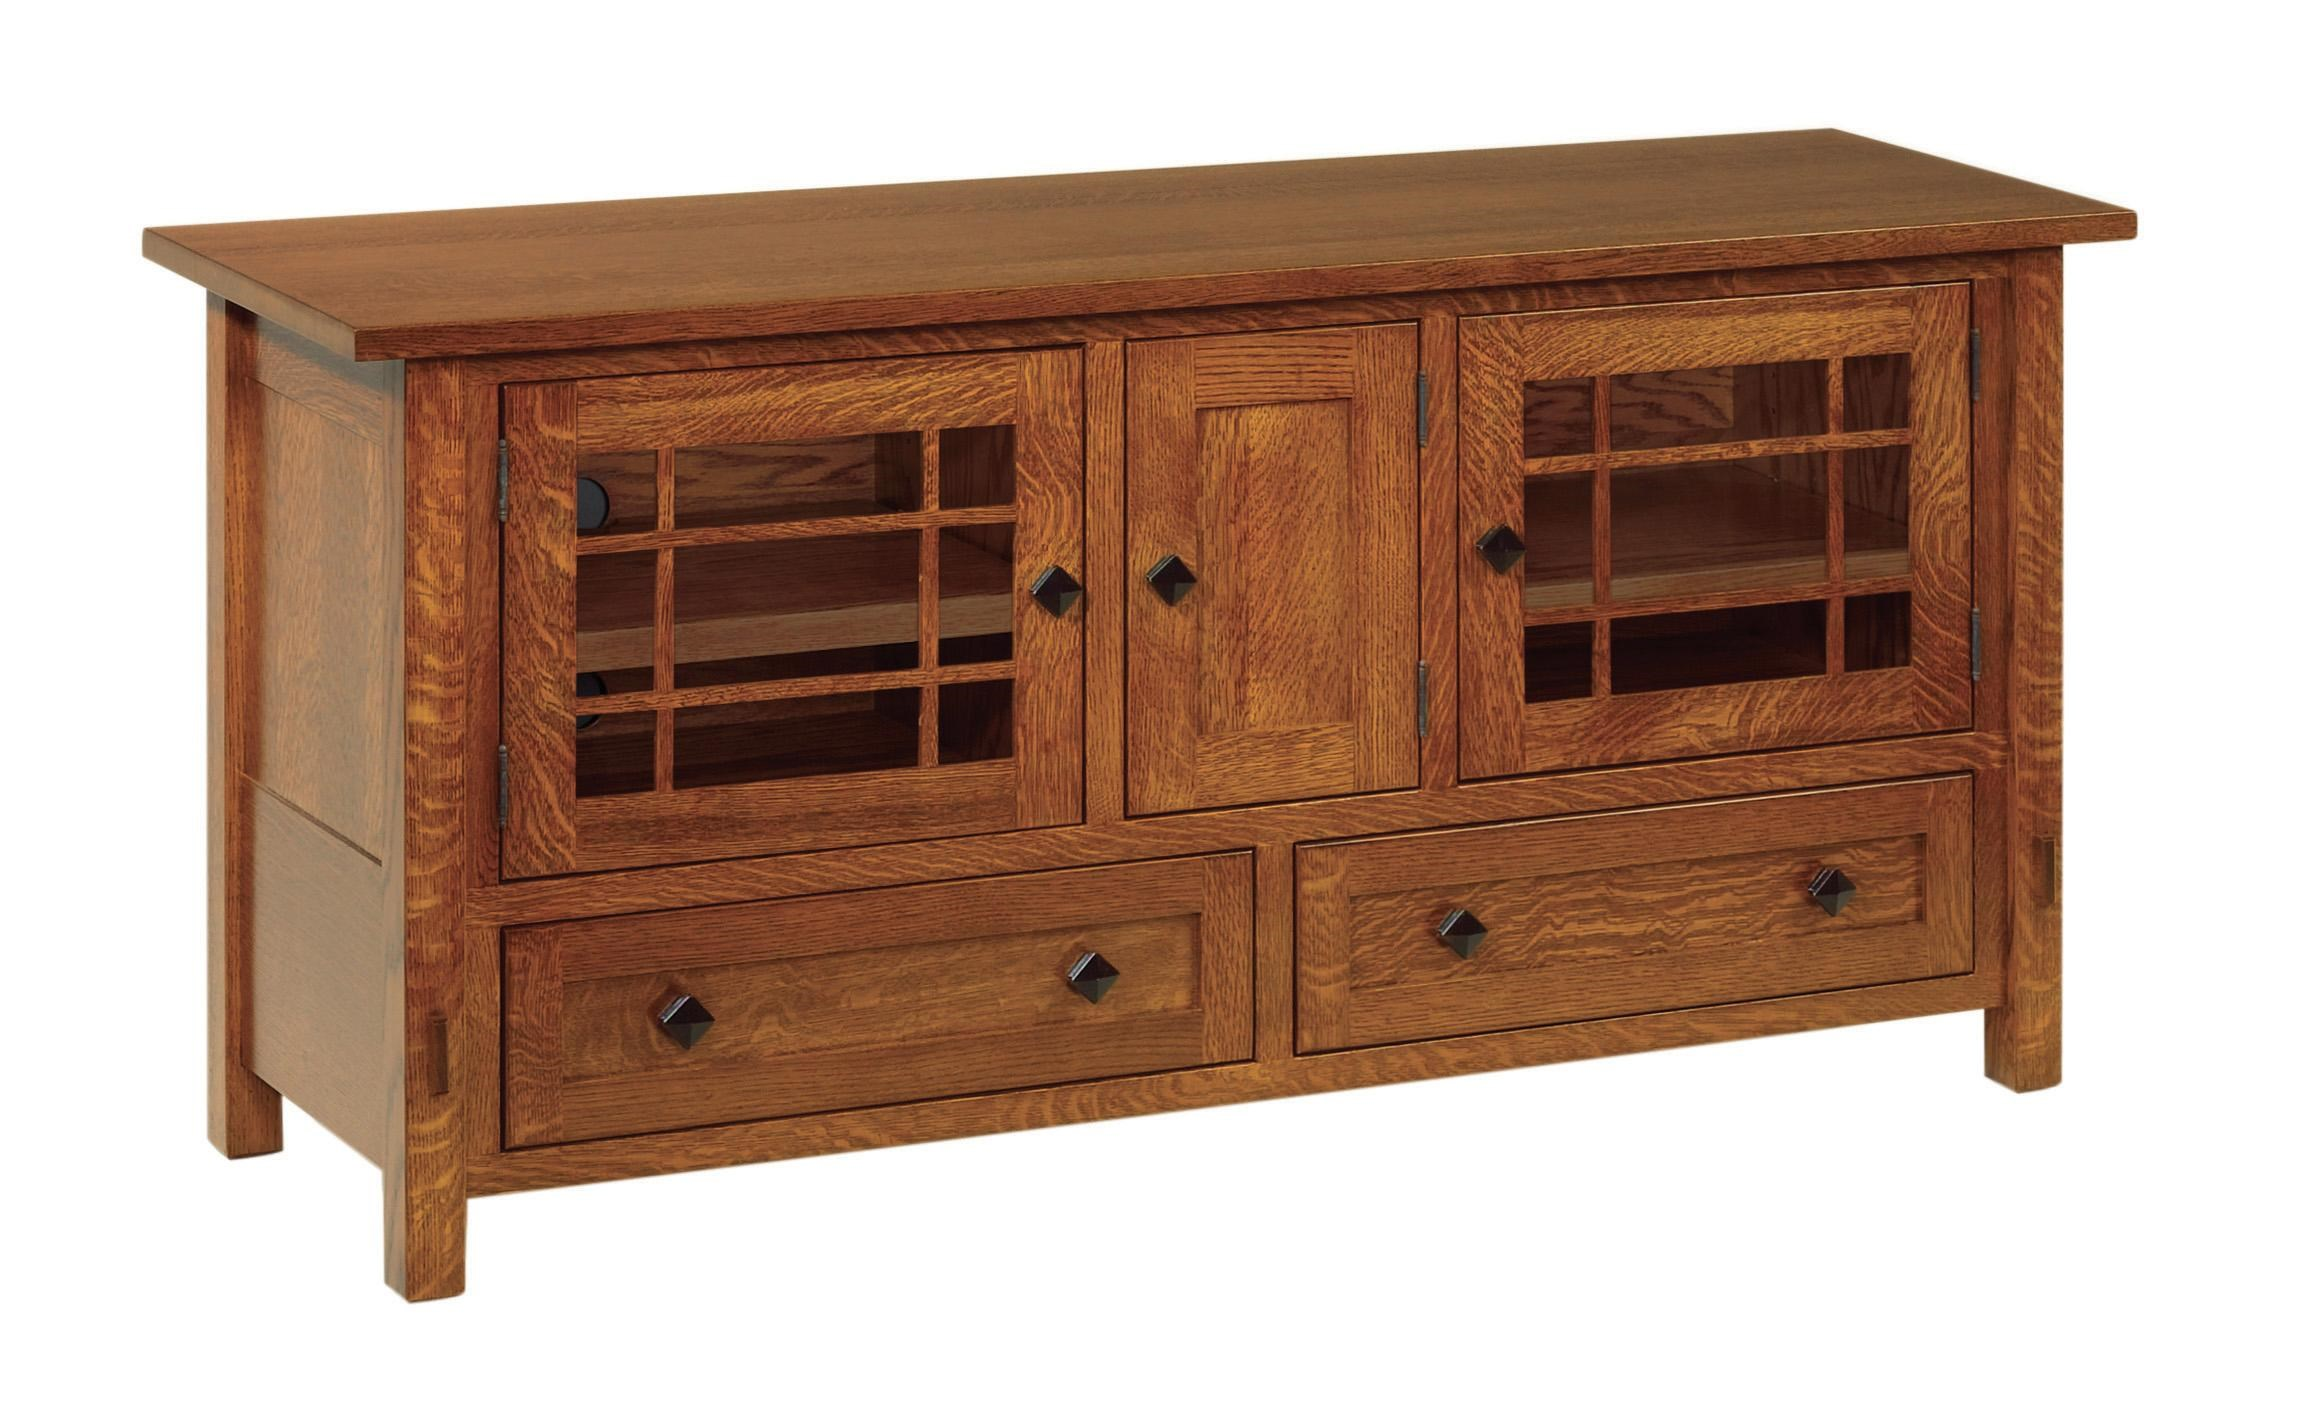 Conrad Grebel Springhill TV Cabinet with 3 Doors and 2 Drawers